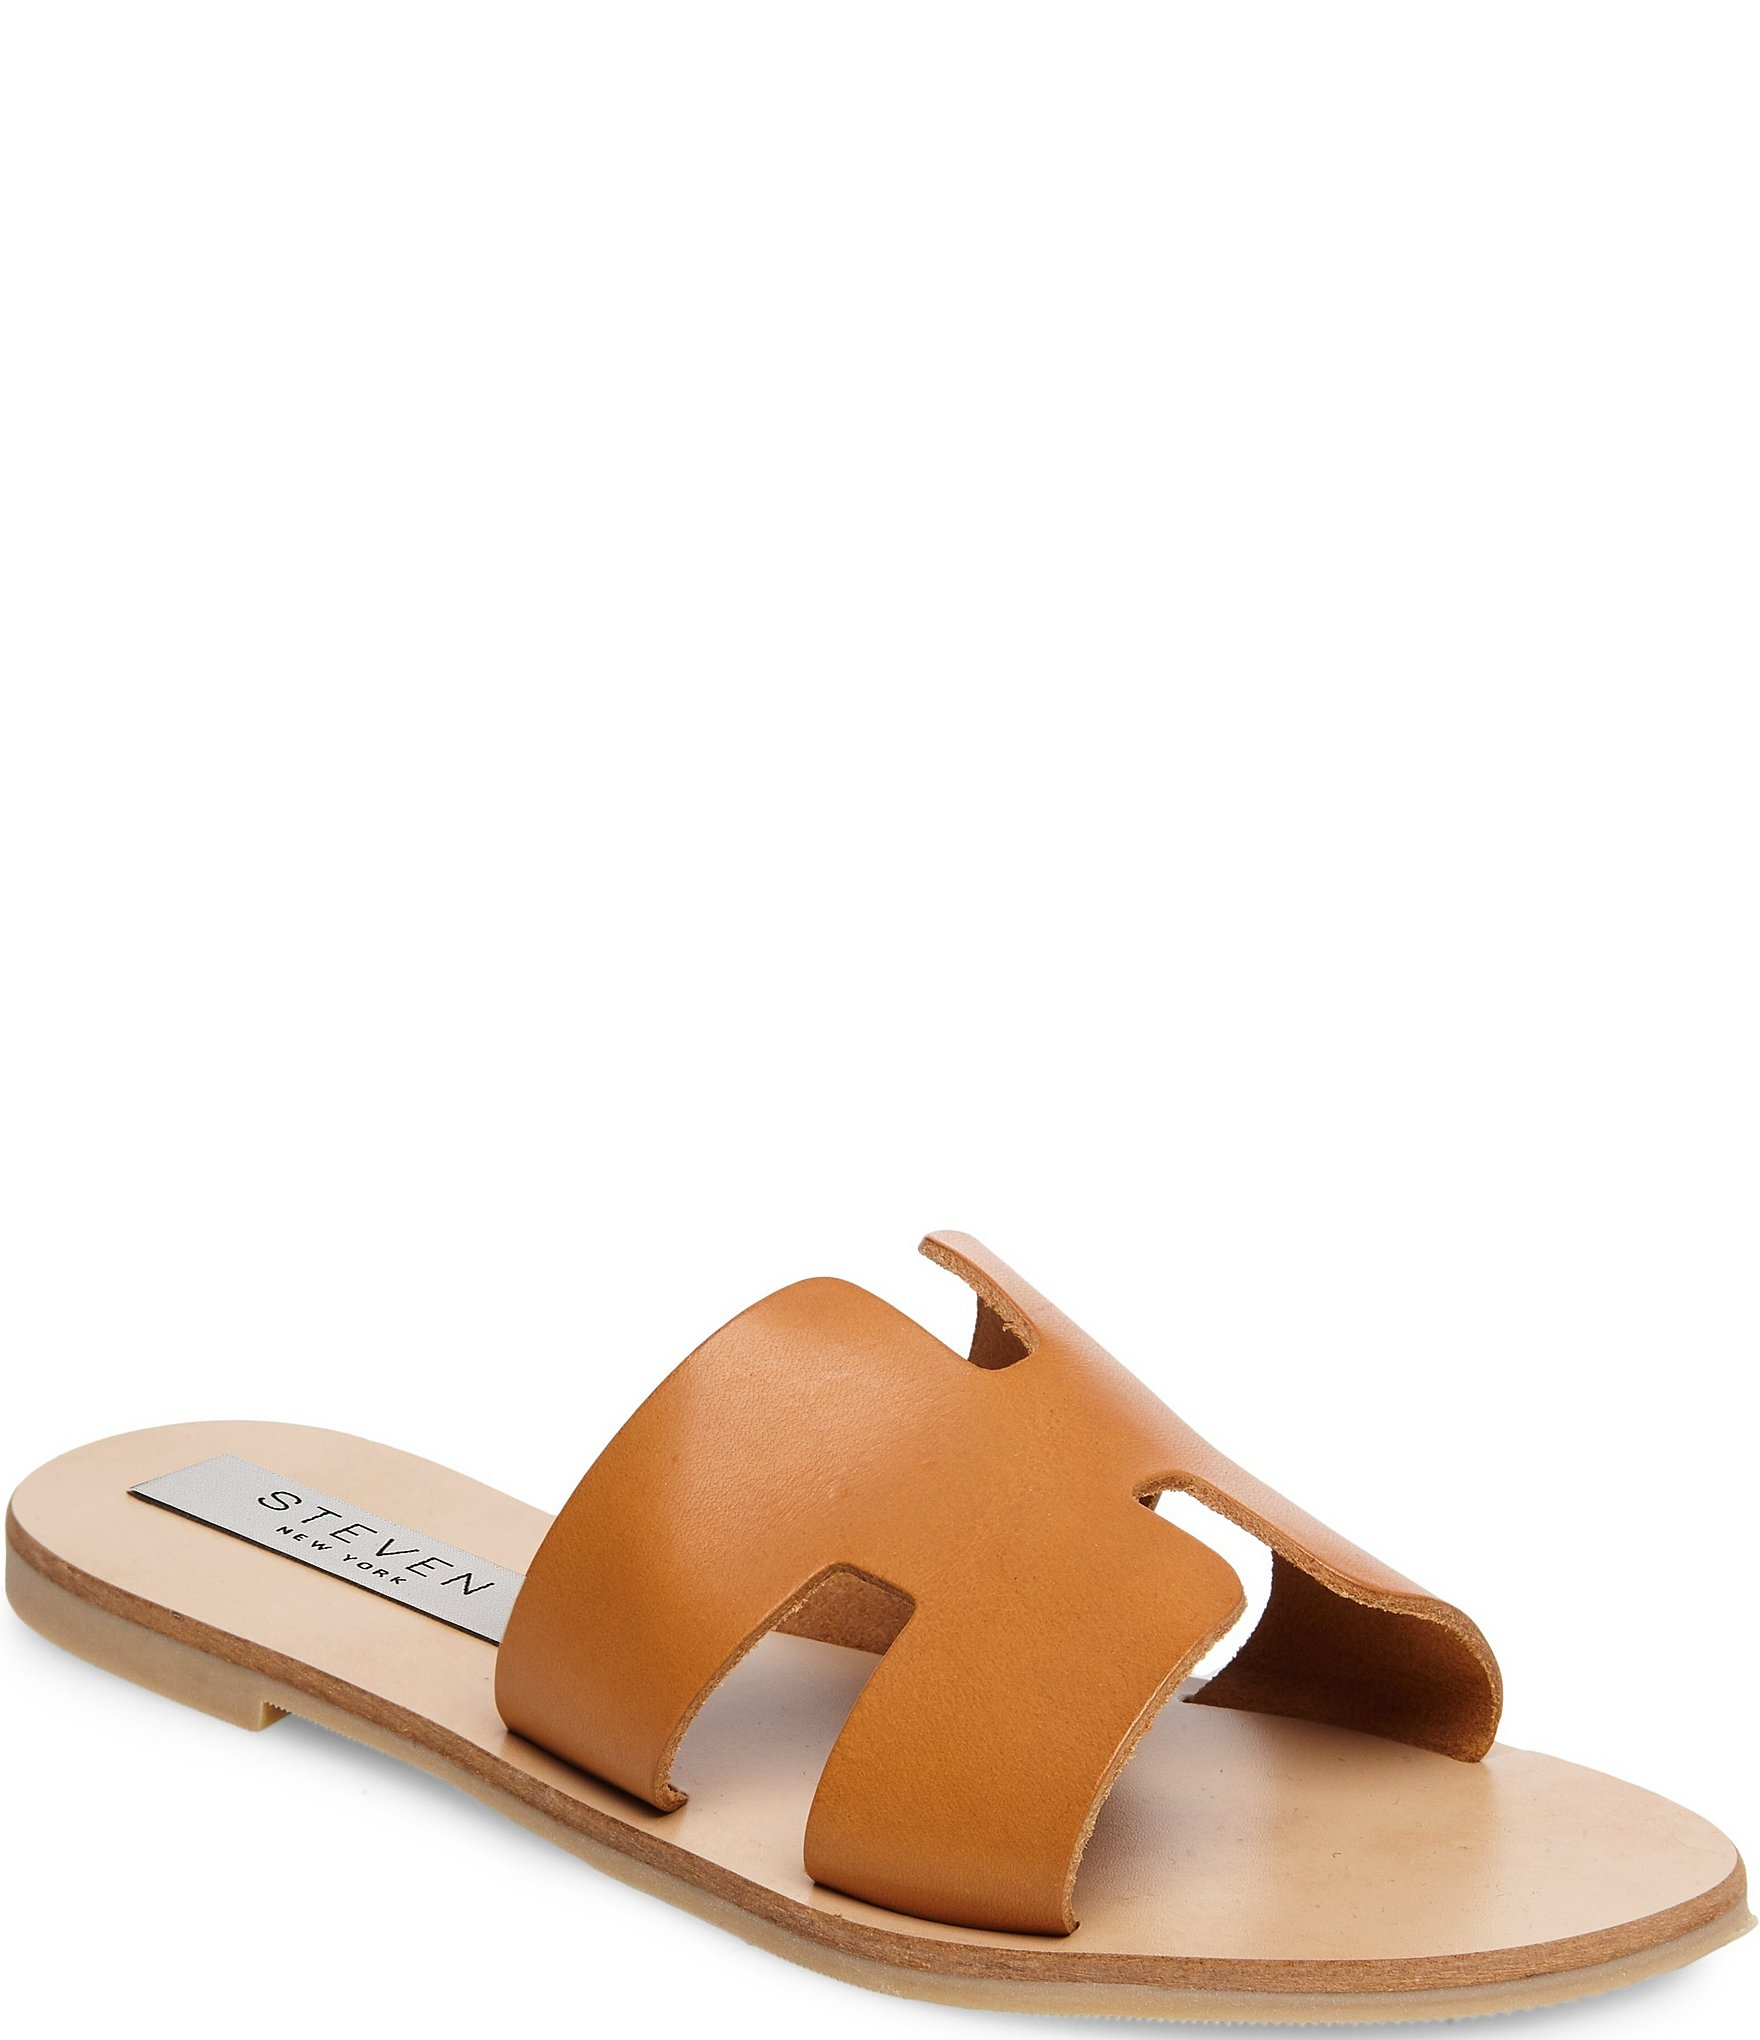 Image result for steve madden tan sandals